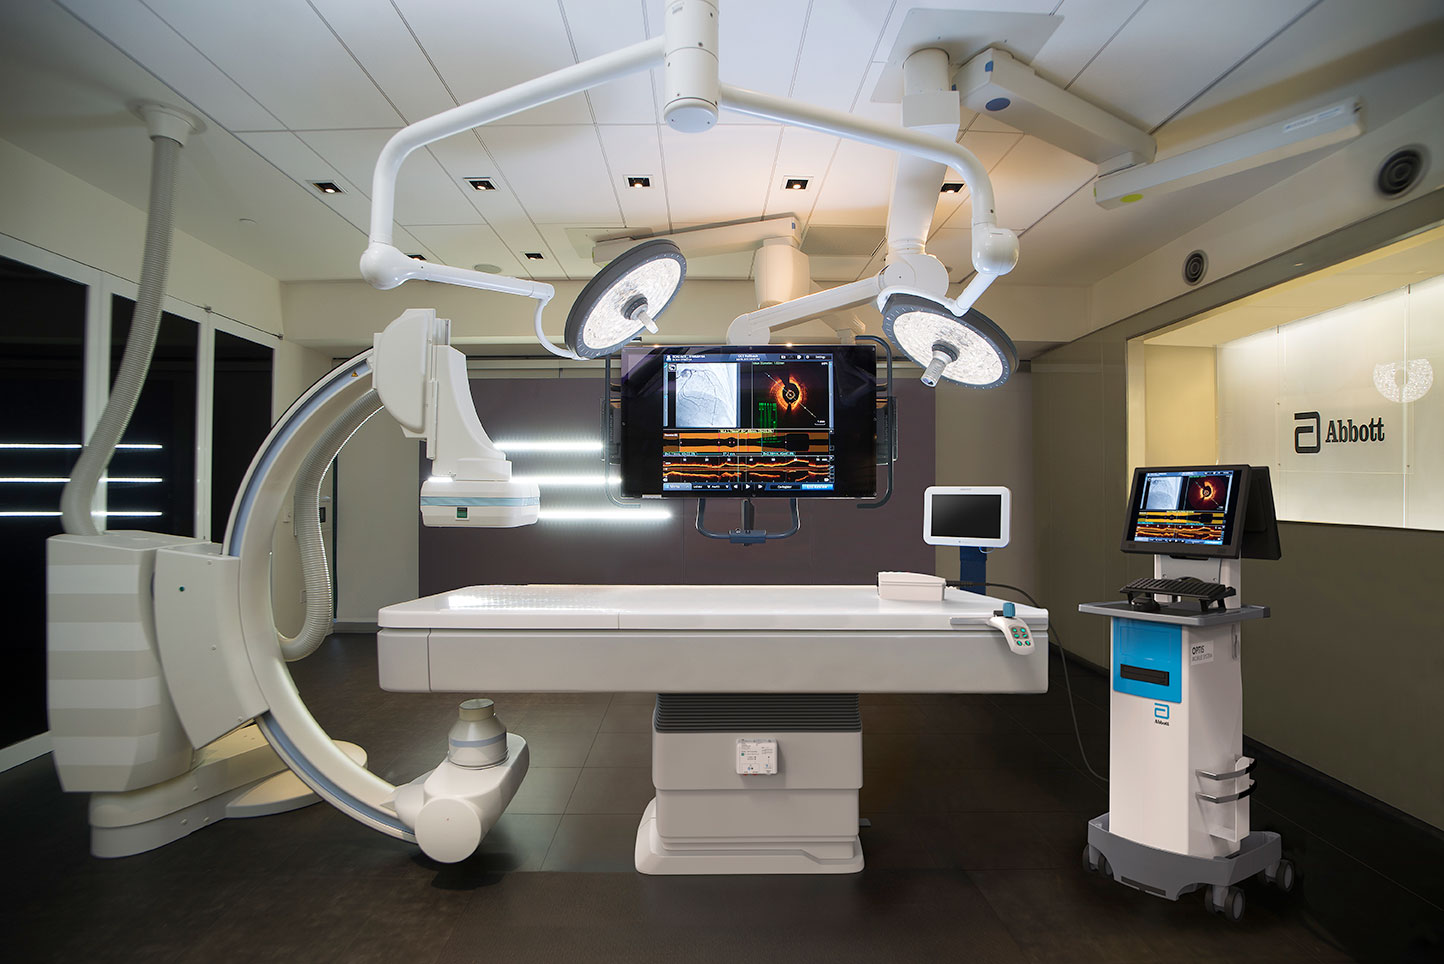 OPTIS Mobile System can be used in multiple cath labs for cath lab OCT intravascular imaging.